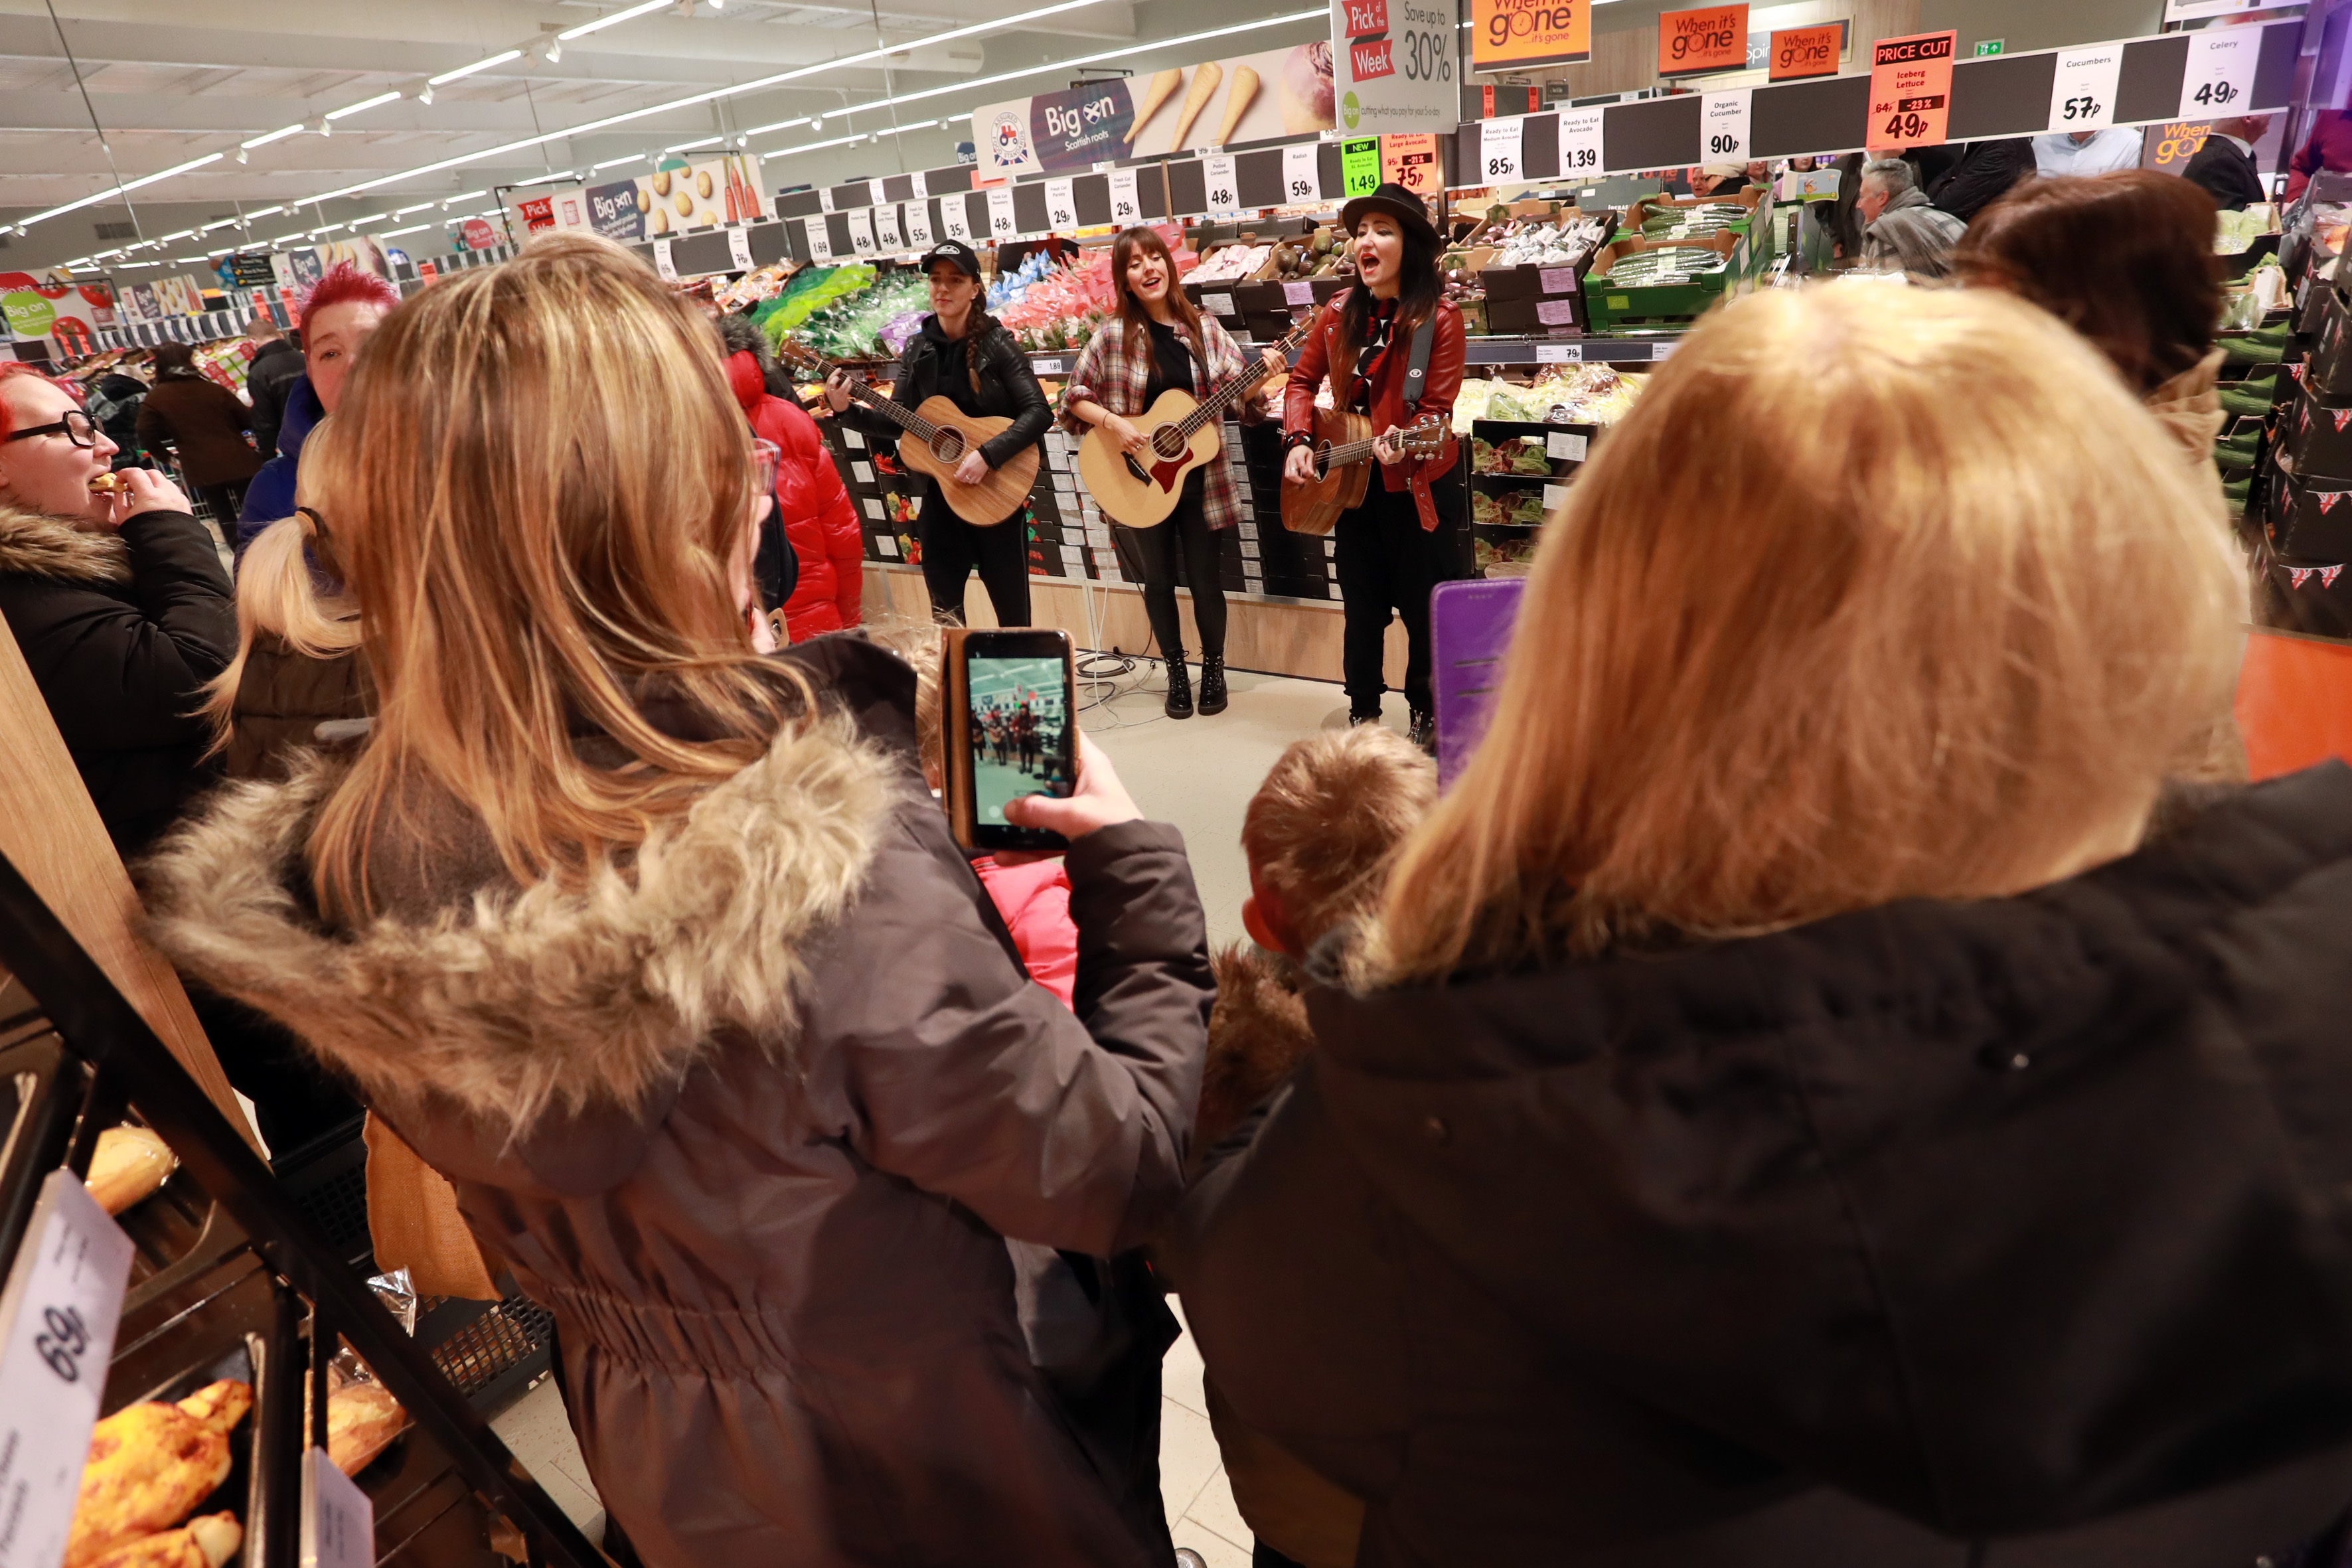 KT Tunstall was at the Lidl store in Cowdenbeath.